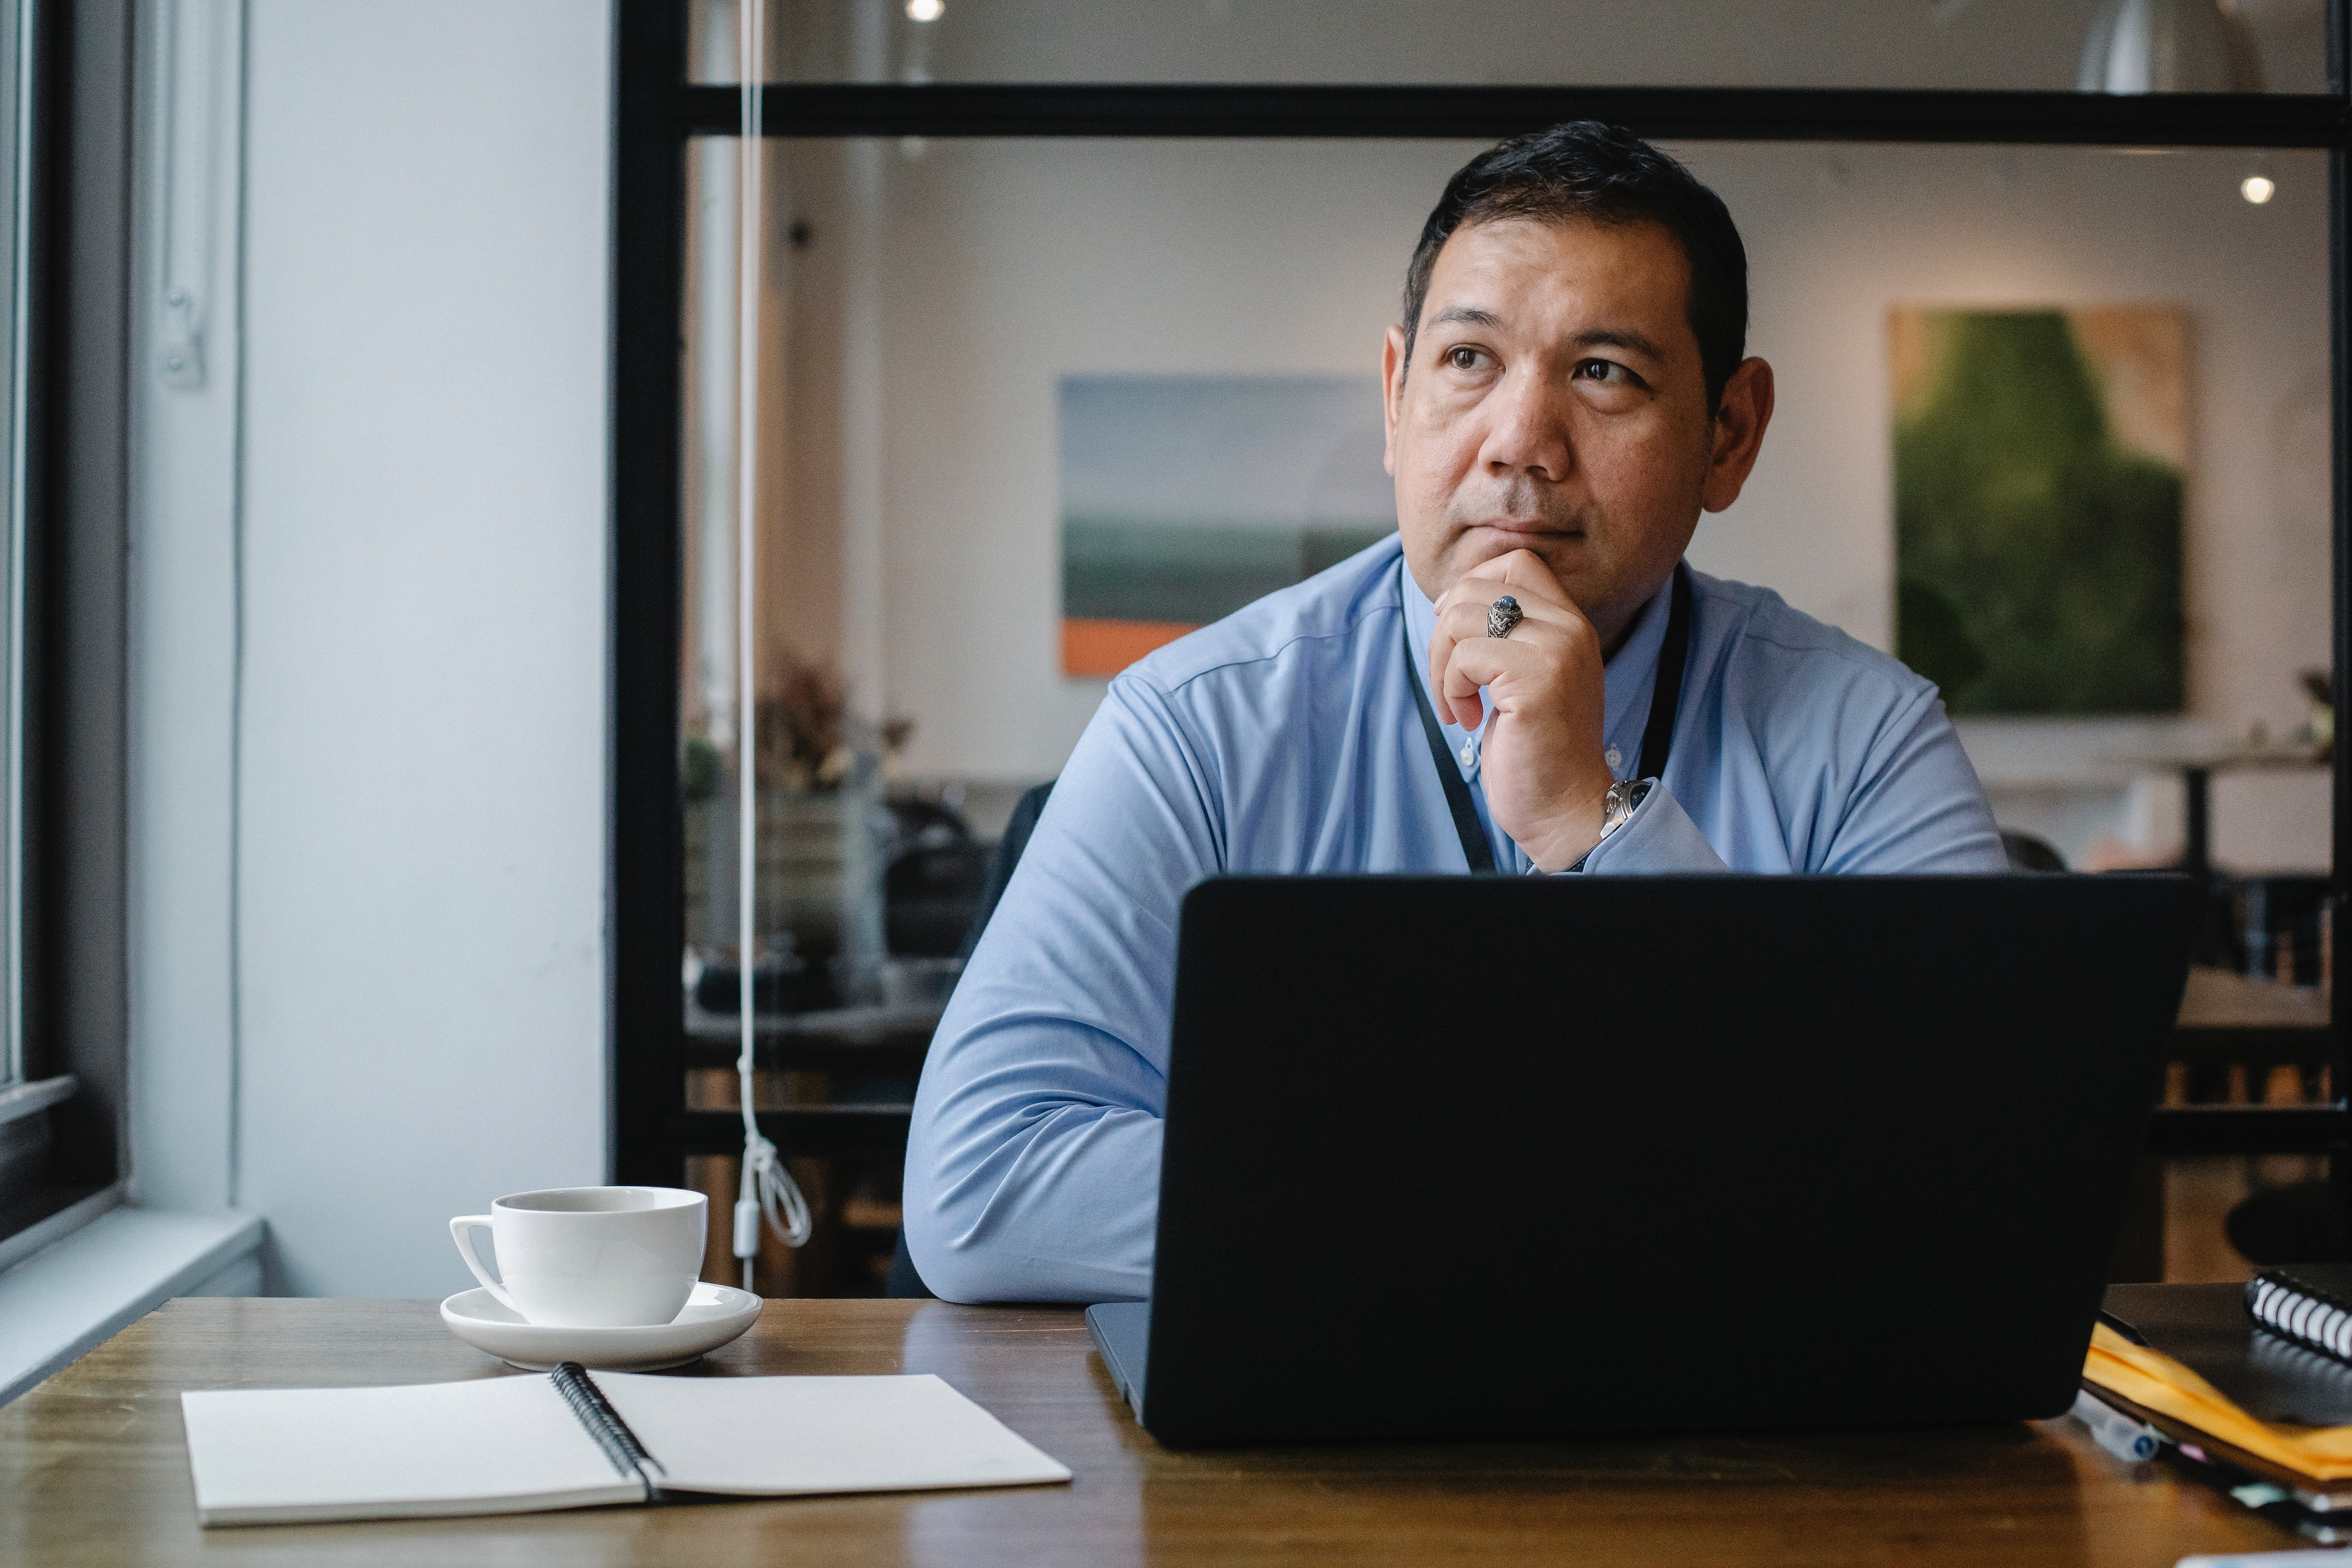 Man behind his office desk staring out the window | Source: Pexels